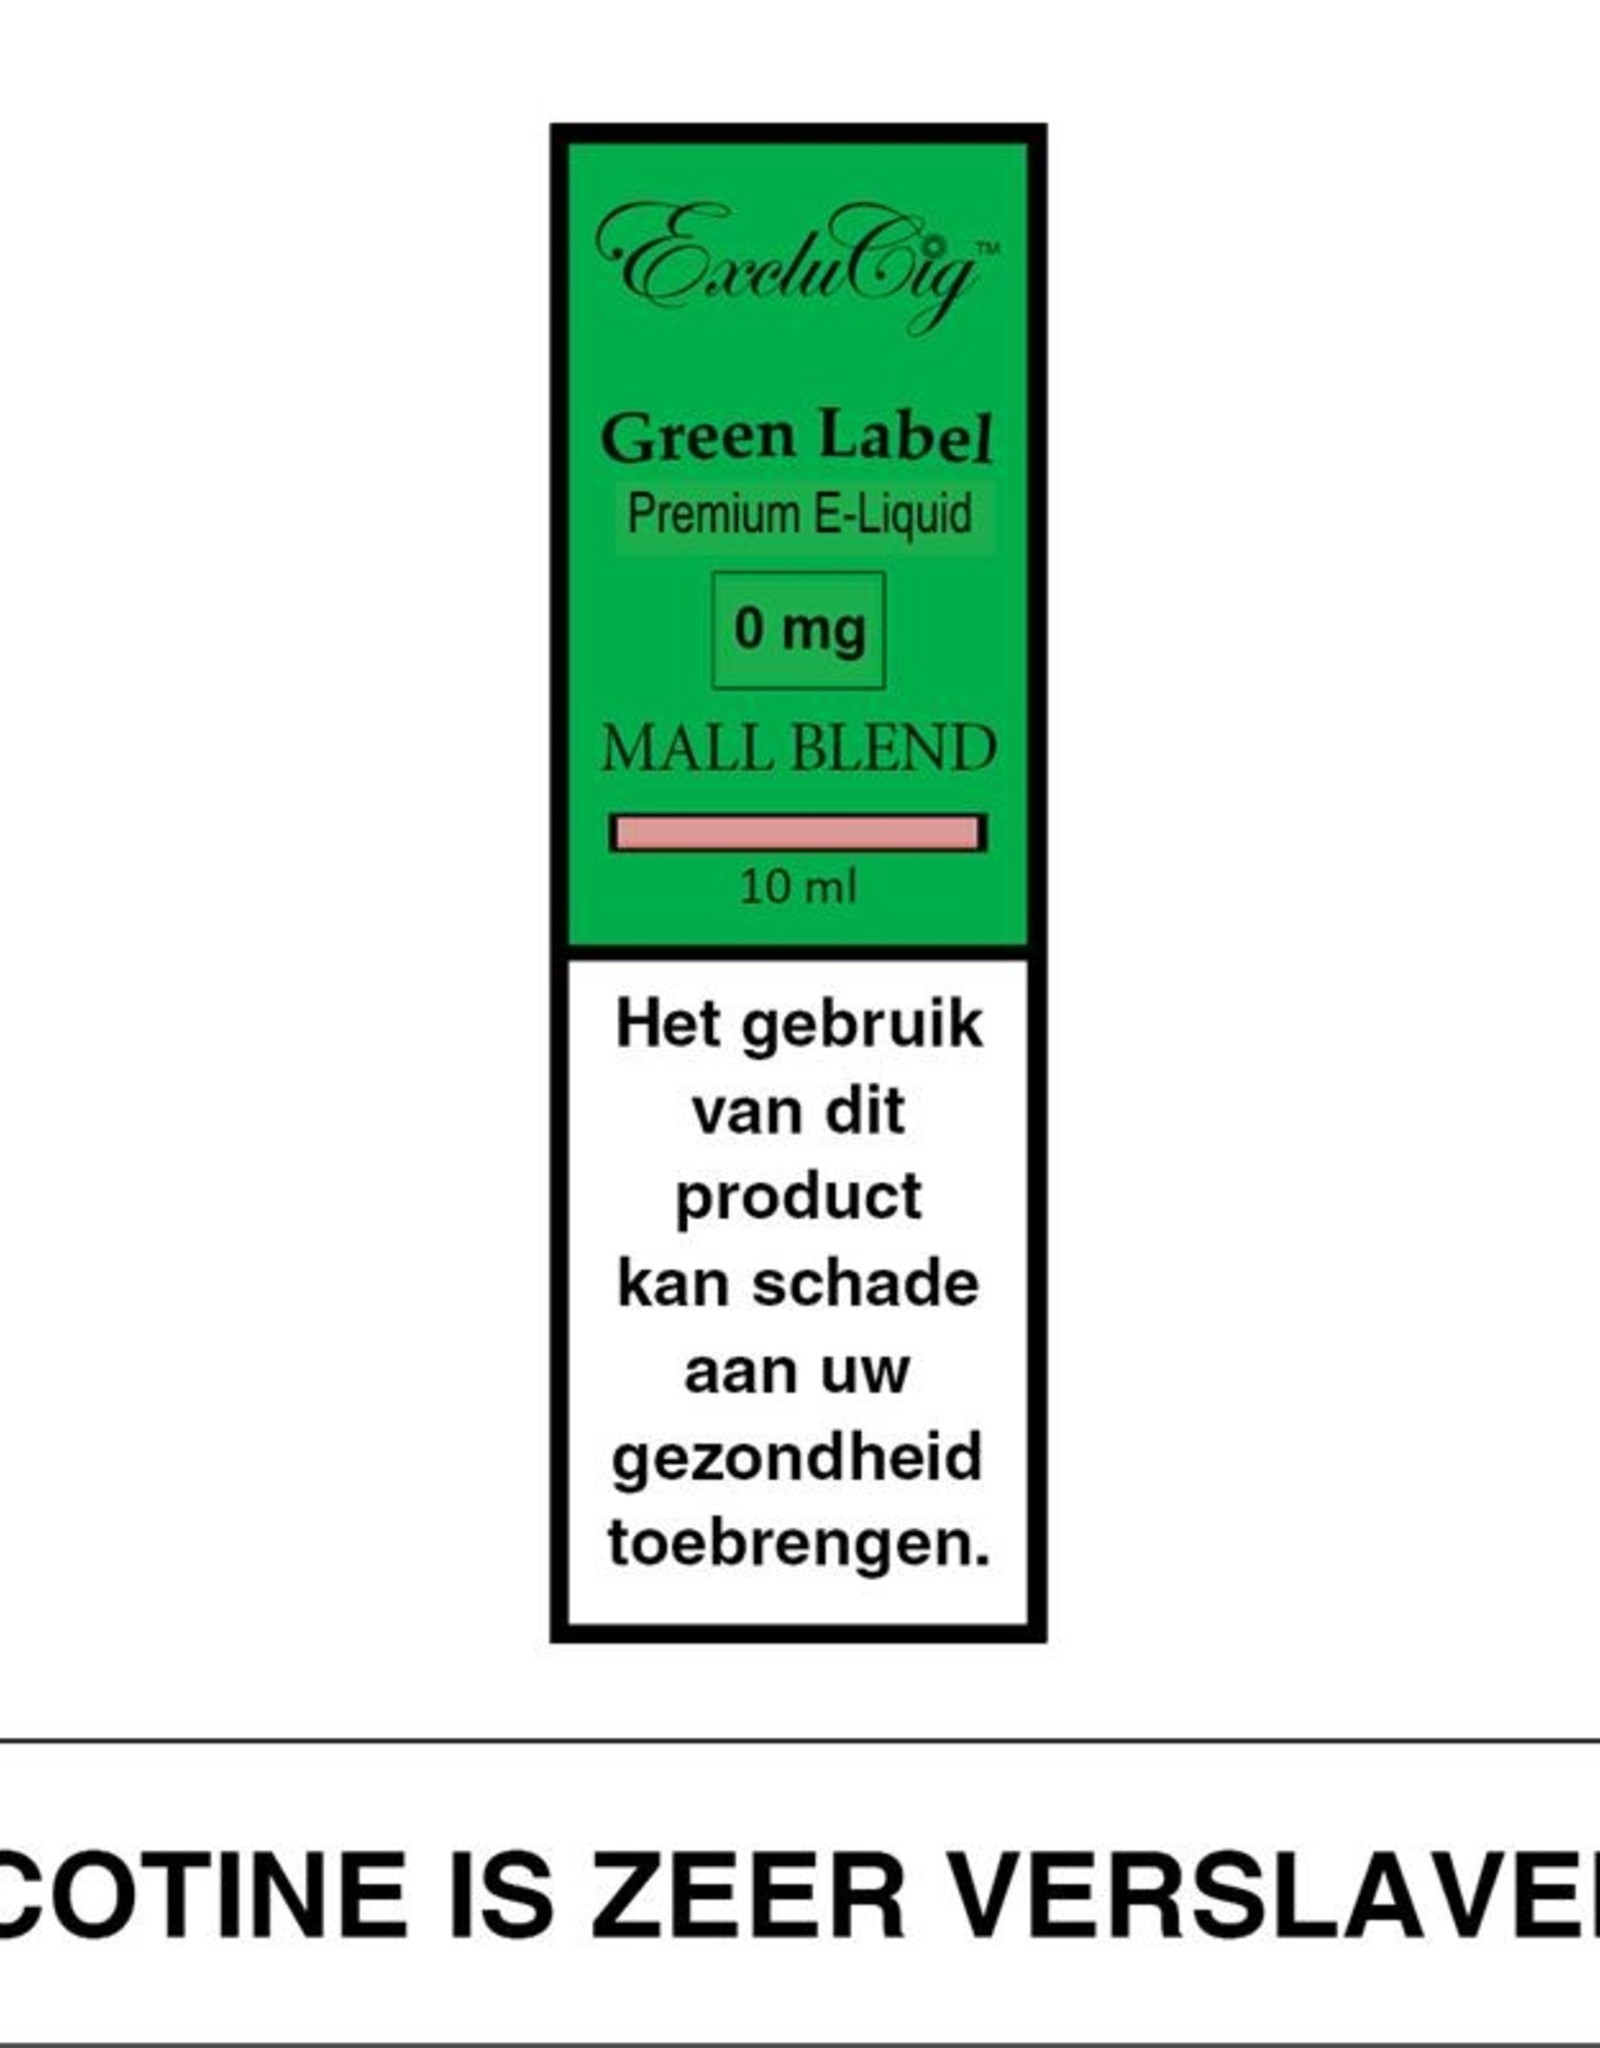 Exclucig Exclucig Green Label E-liquid Mall Blend 0 mg Nicotine